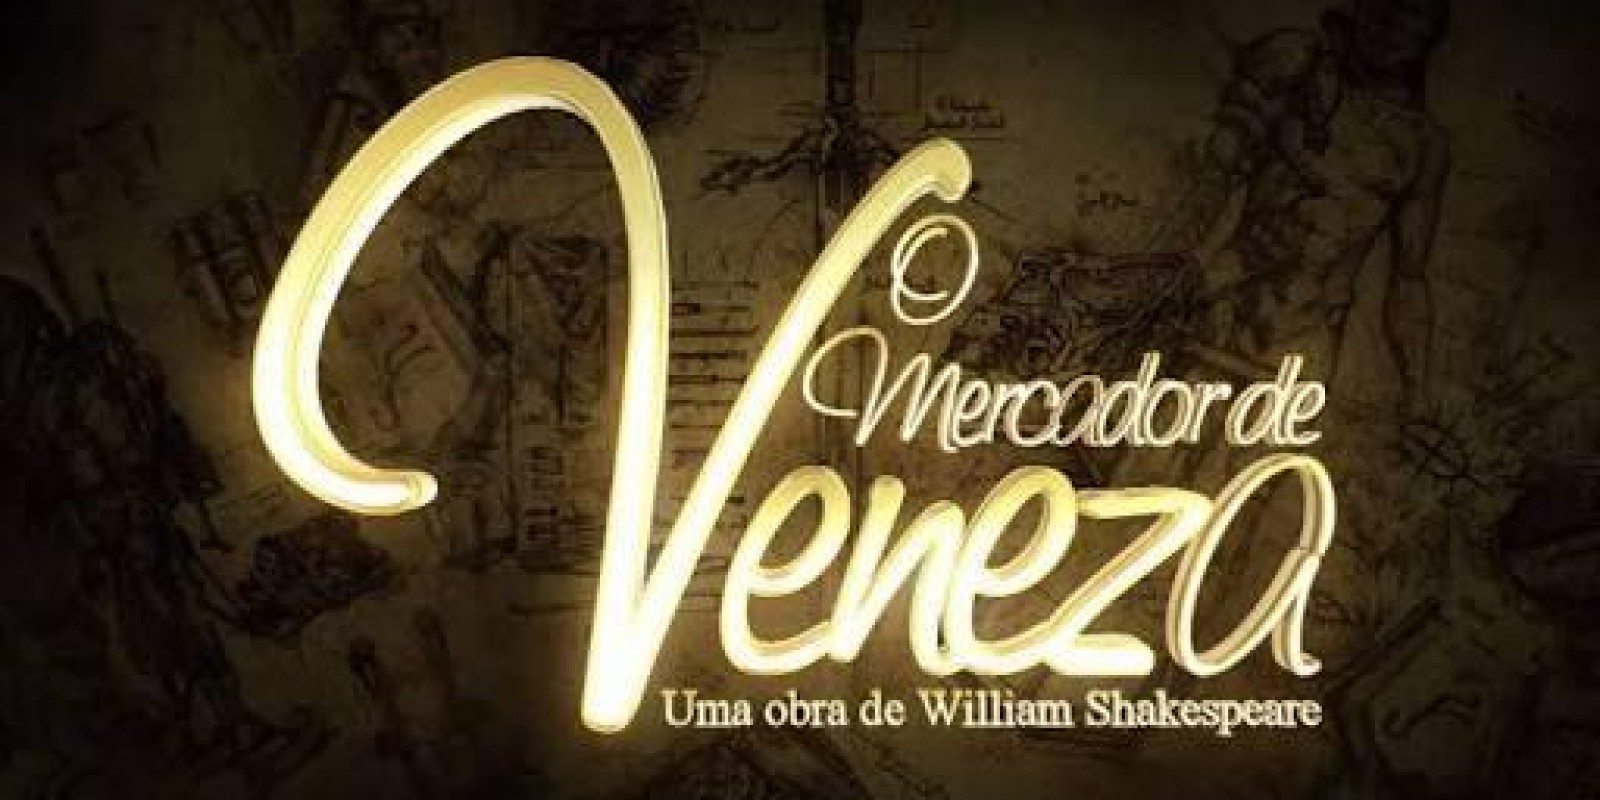 [O mercador de Veneza - Willian Shakespeare]